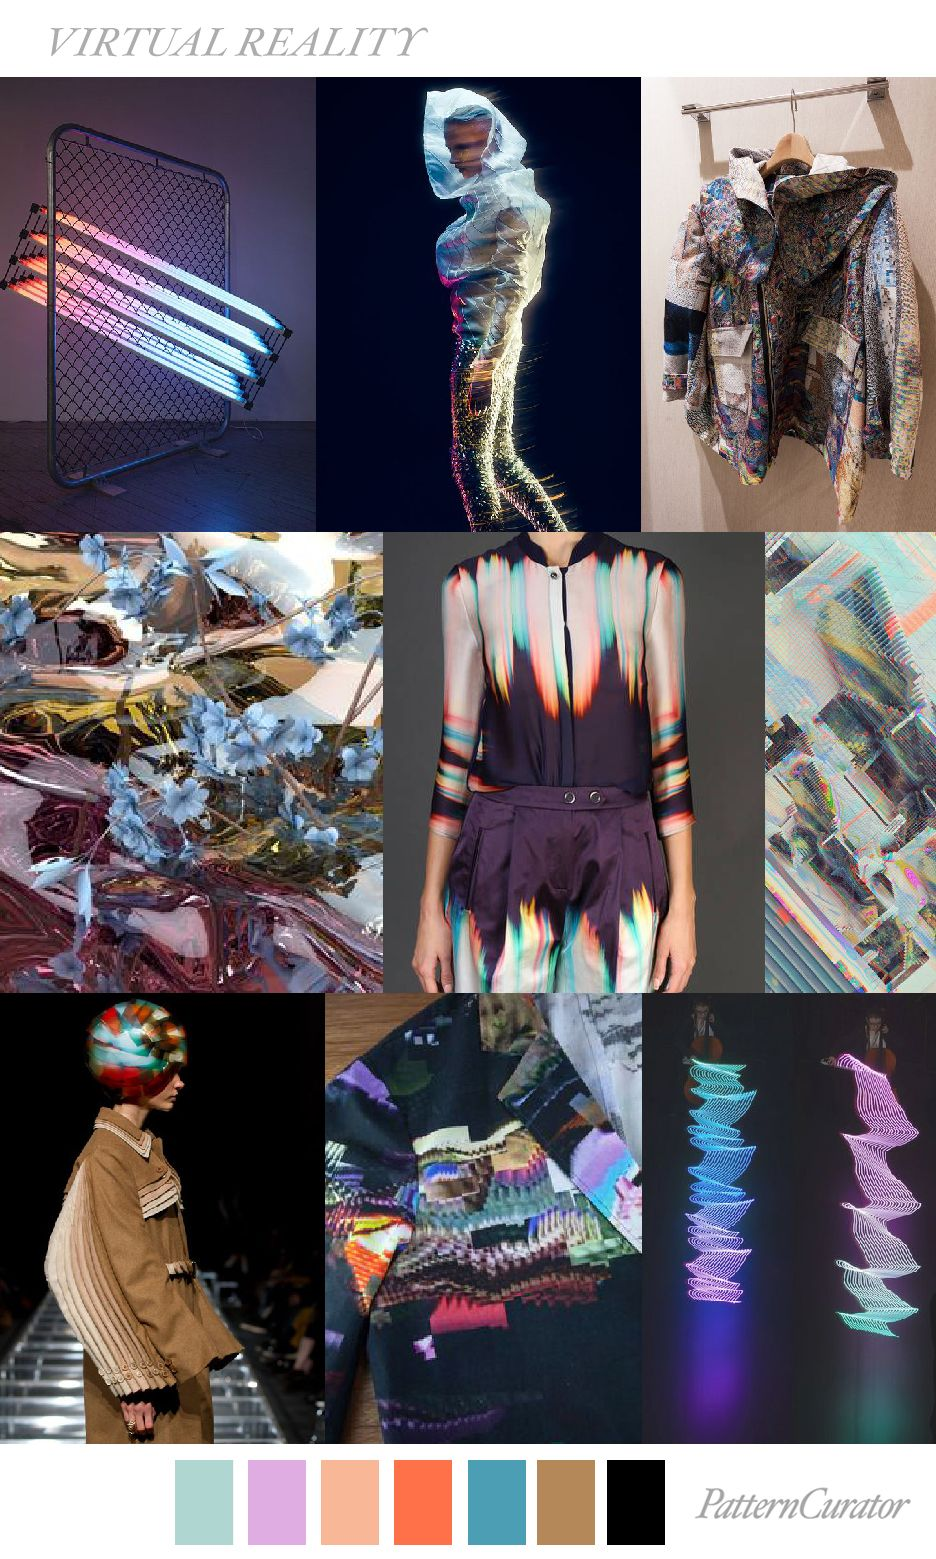 TREND_VIRTUAL REALITY by PatternCurator | Saved by Gabby Fincham |